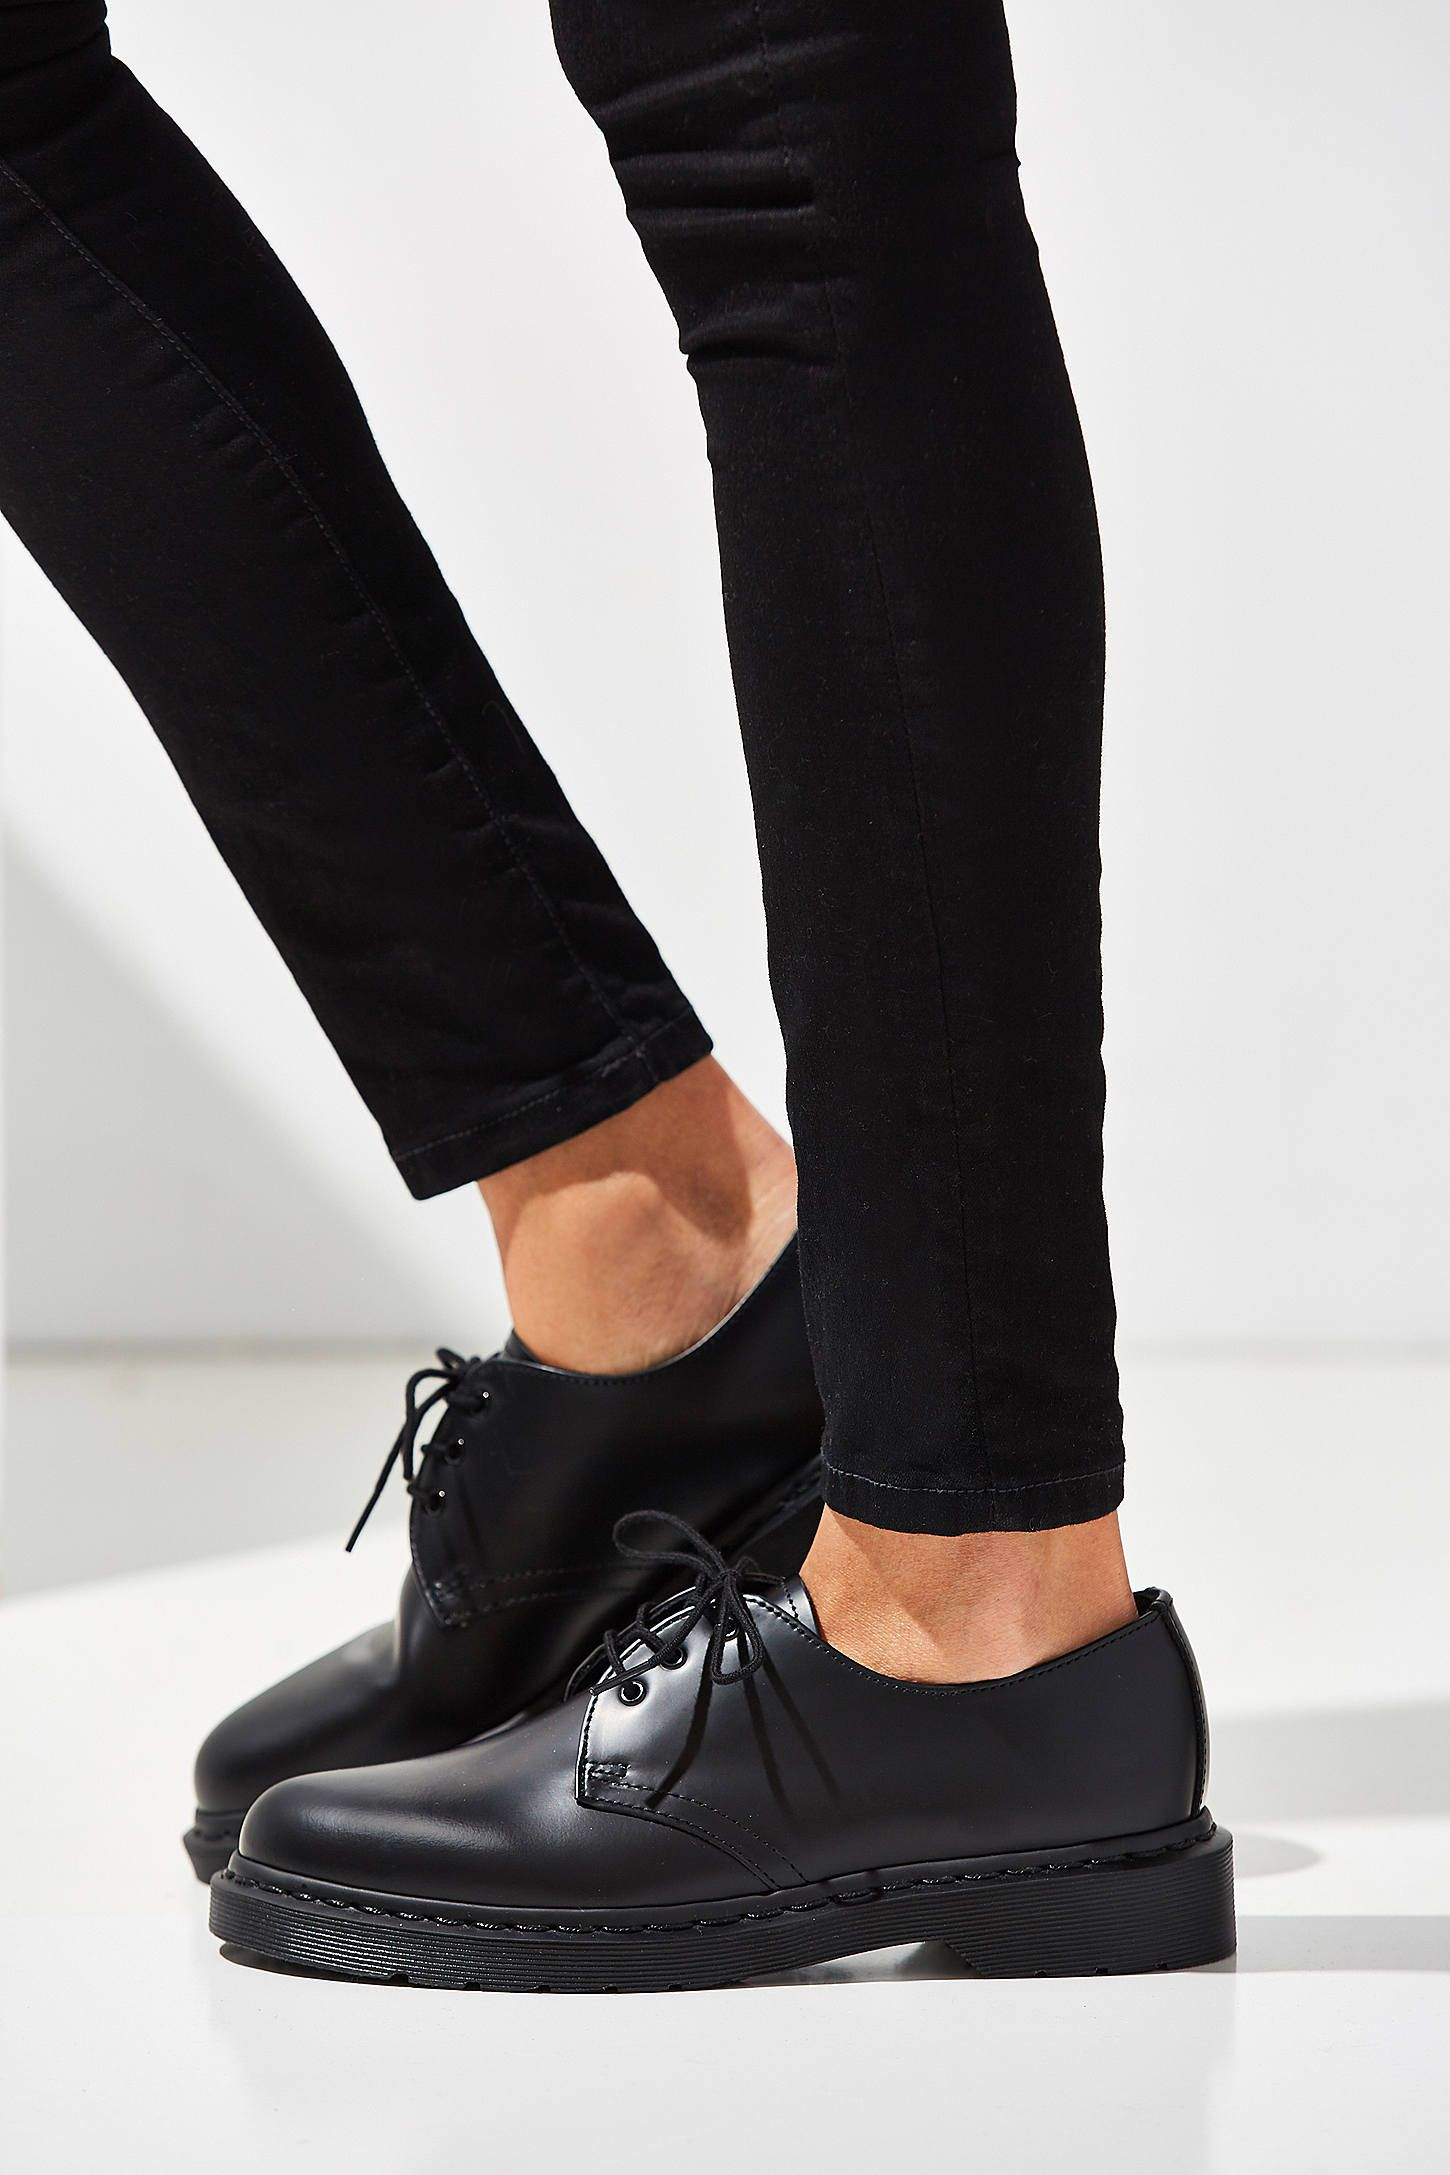 Dr. Martens 1461 Mono 3 Eye Oxford, $115   Urban Outfitters